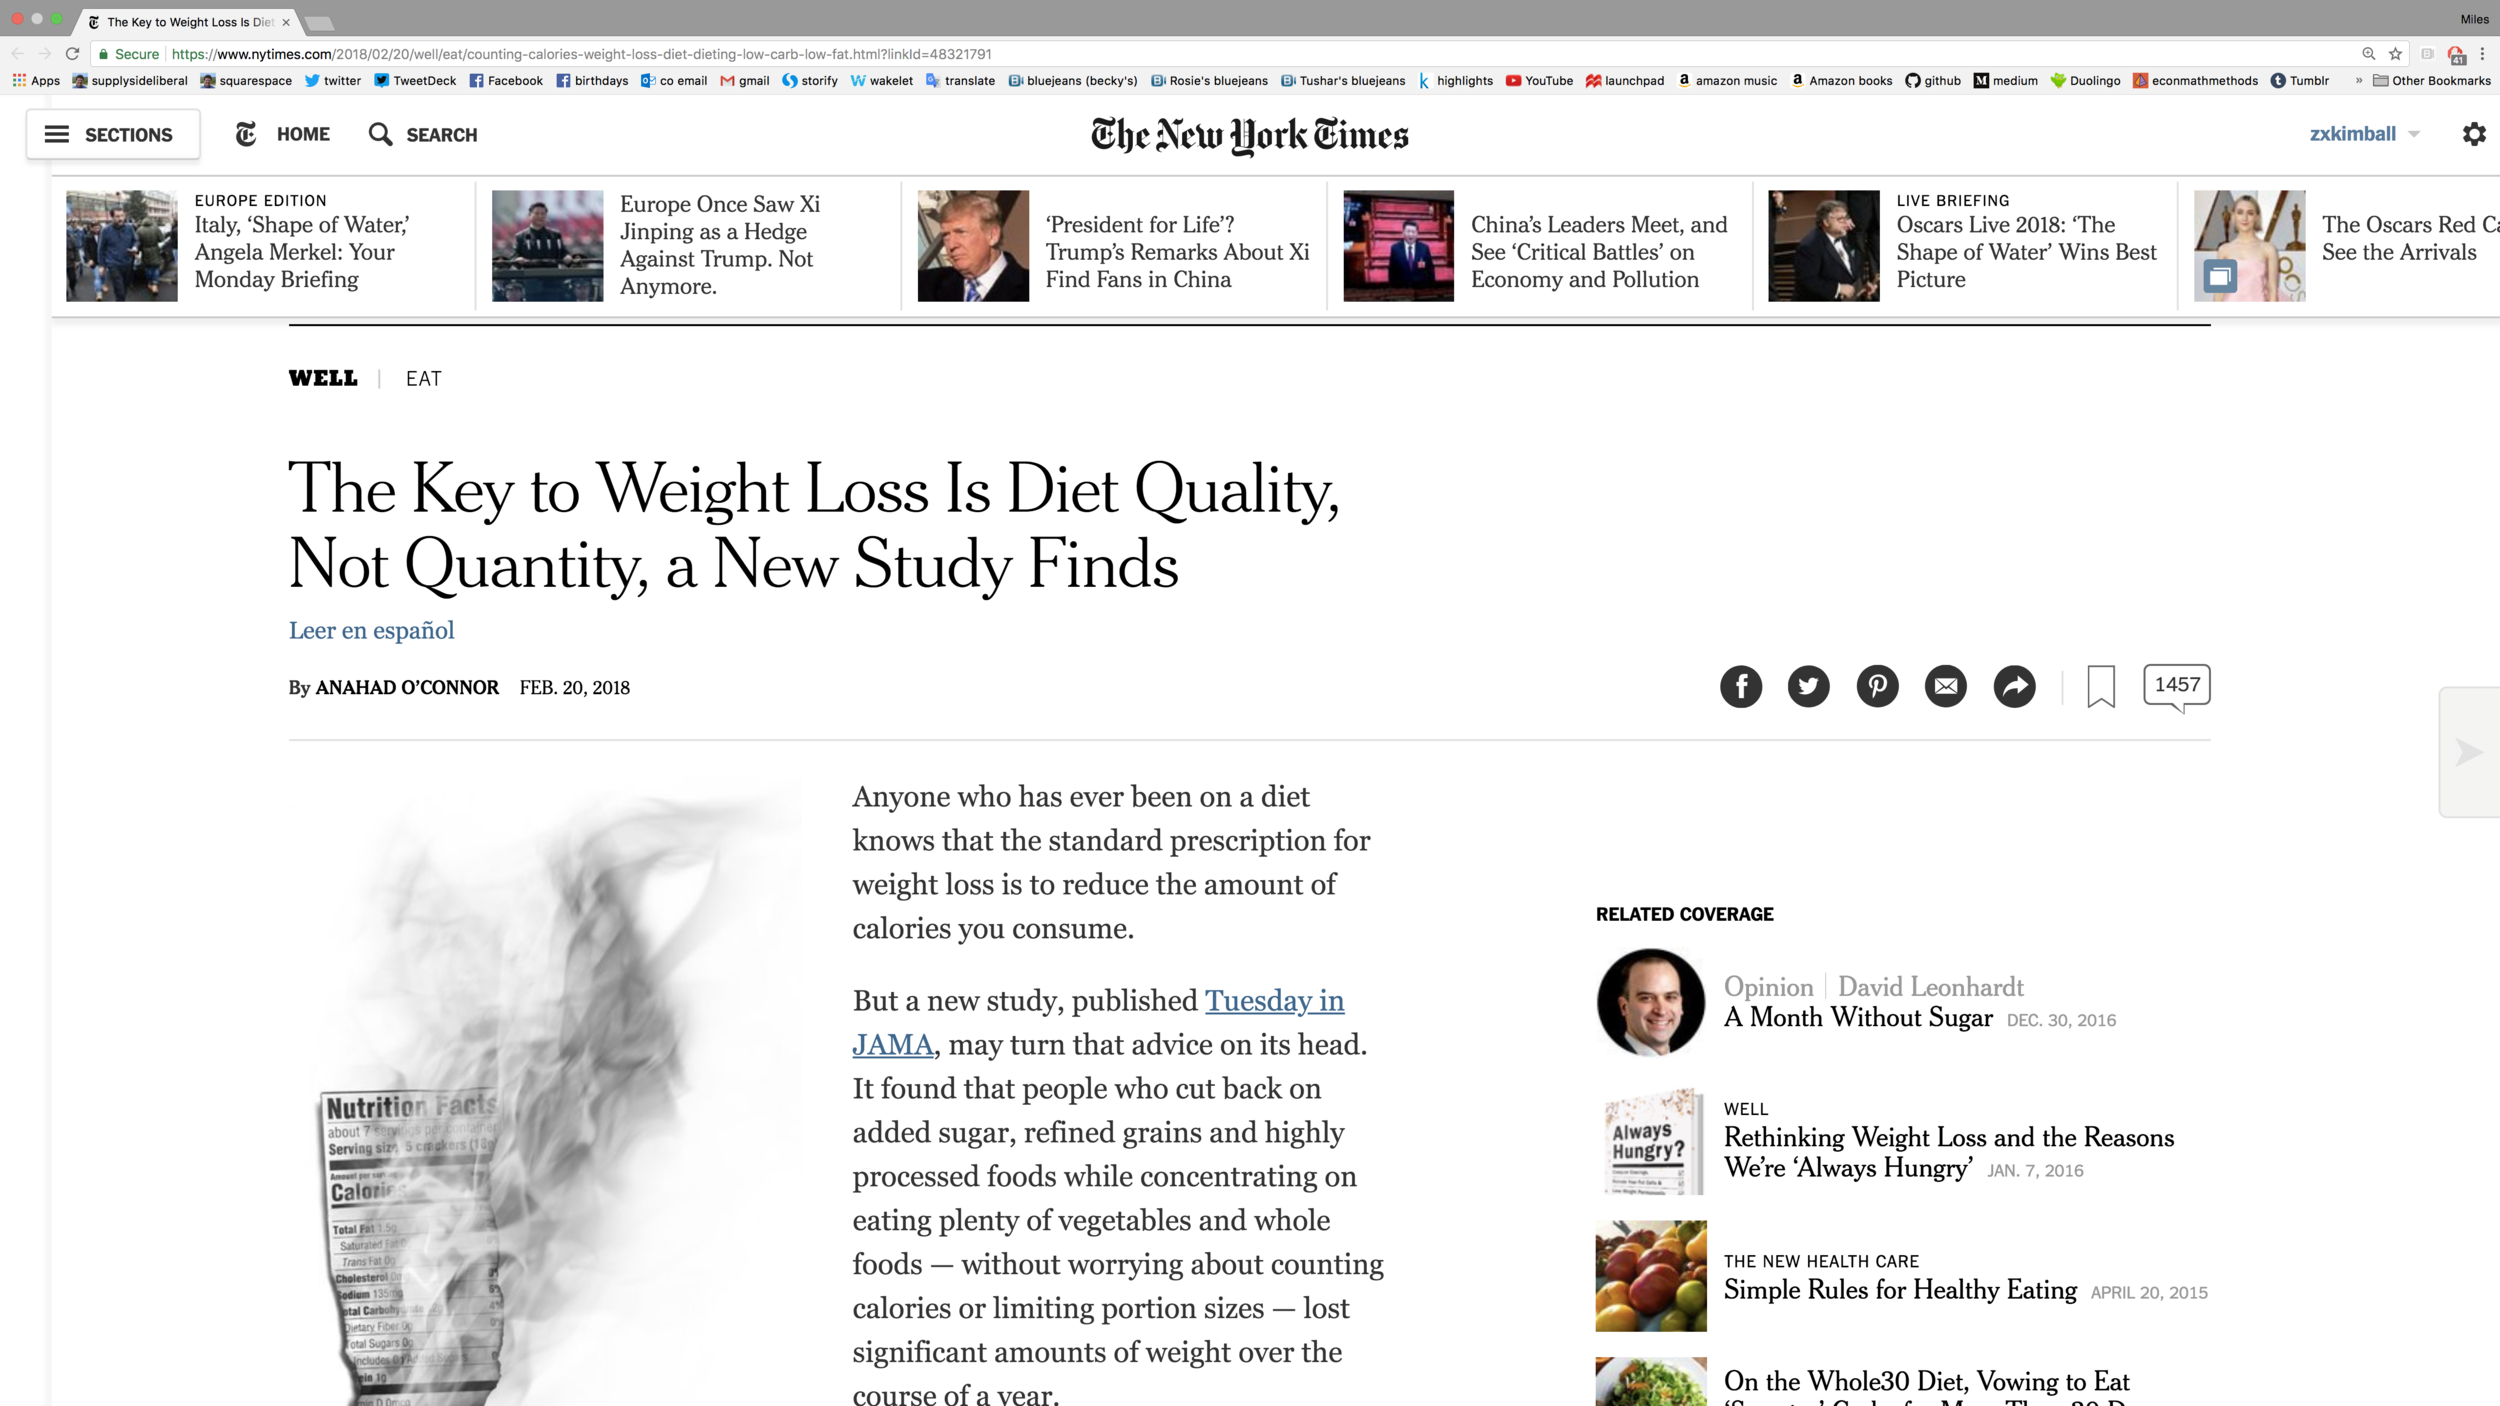 Link to Anahad O'Connor's article in the New York Times